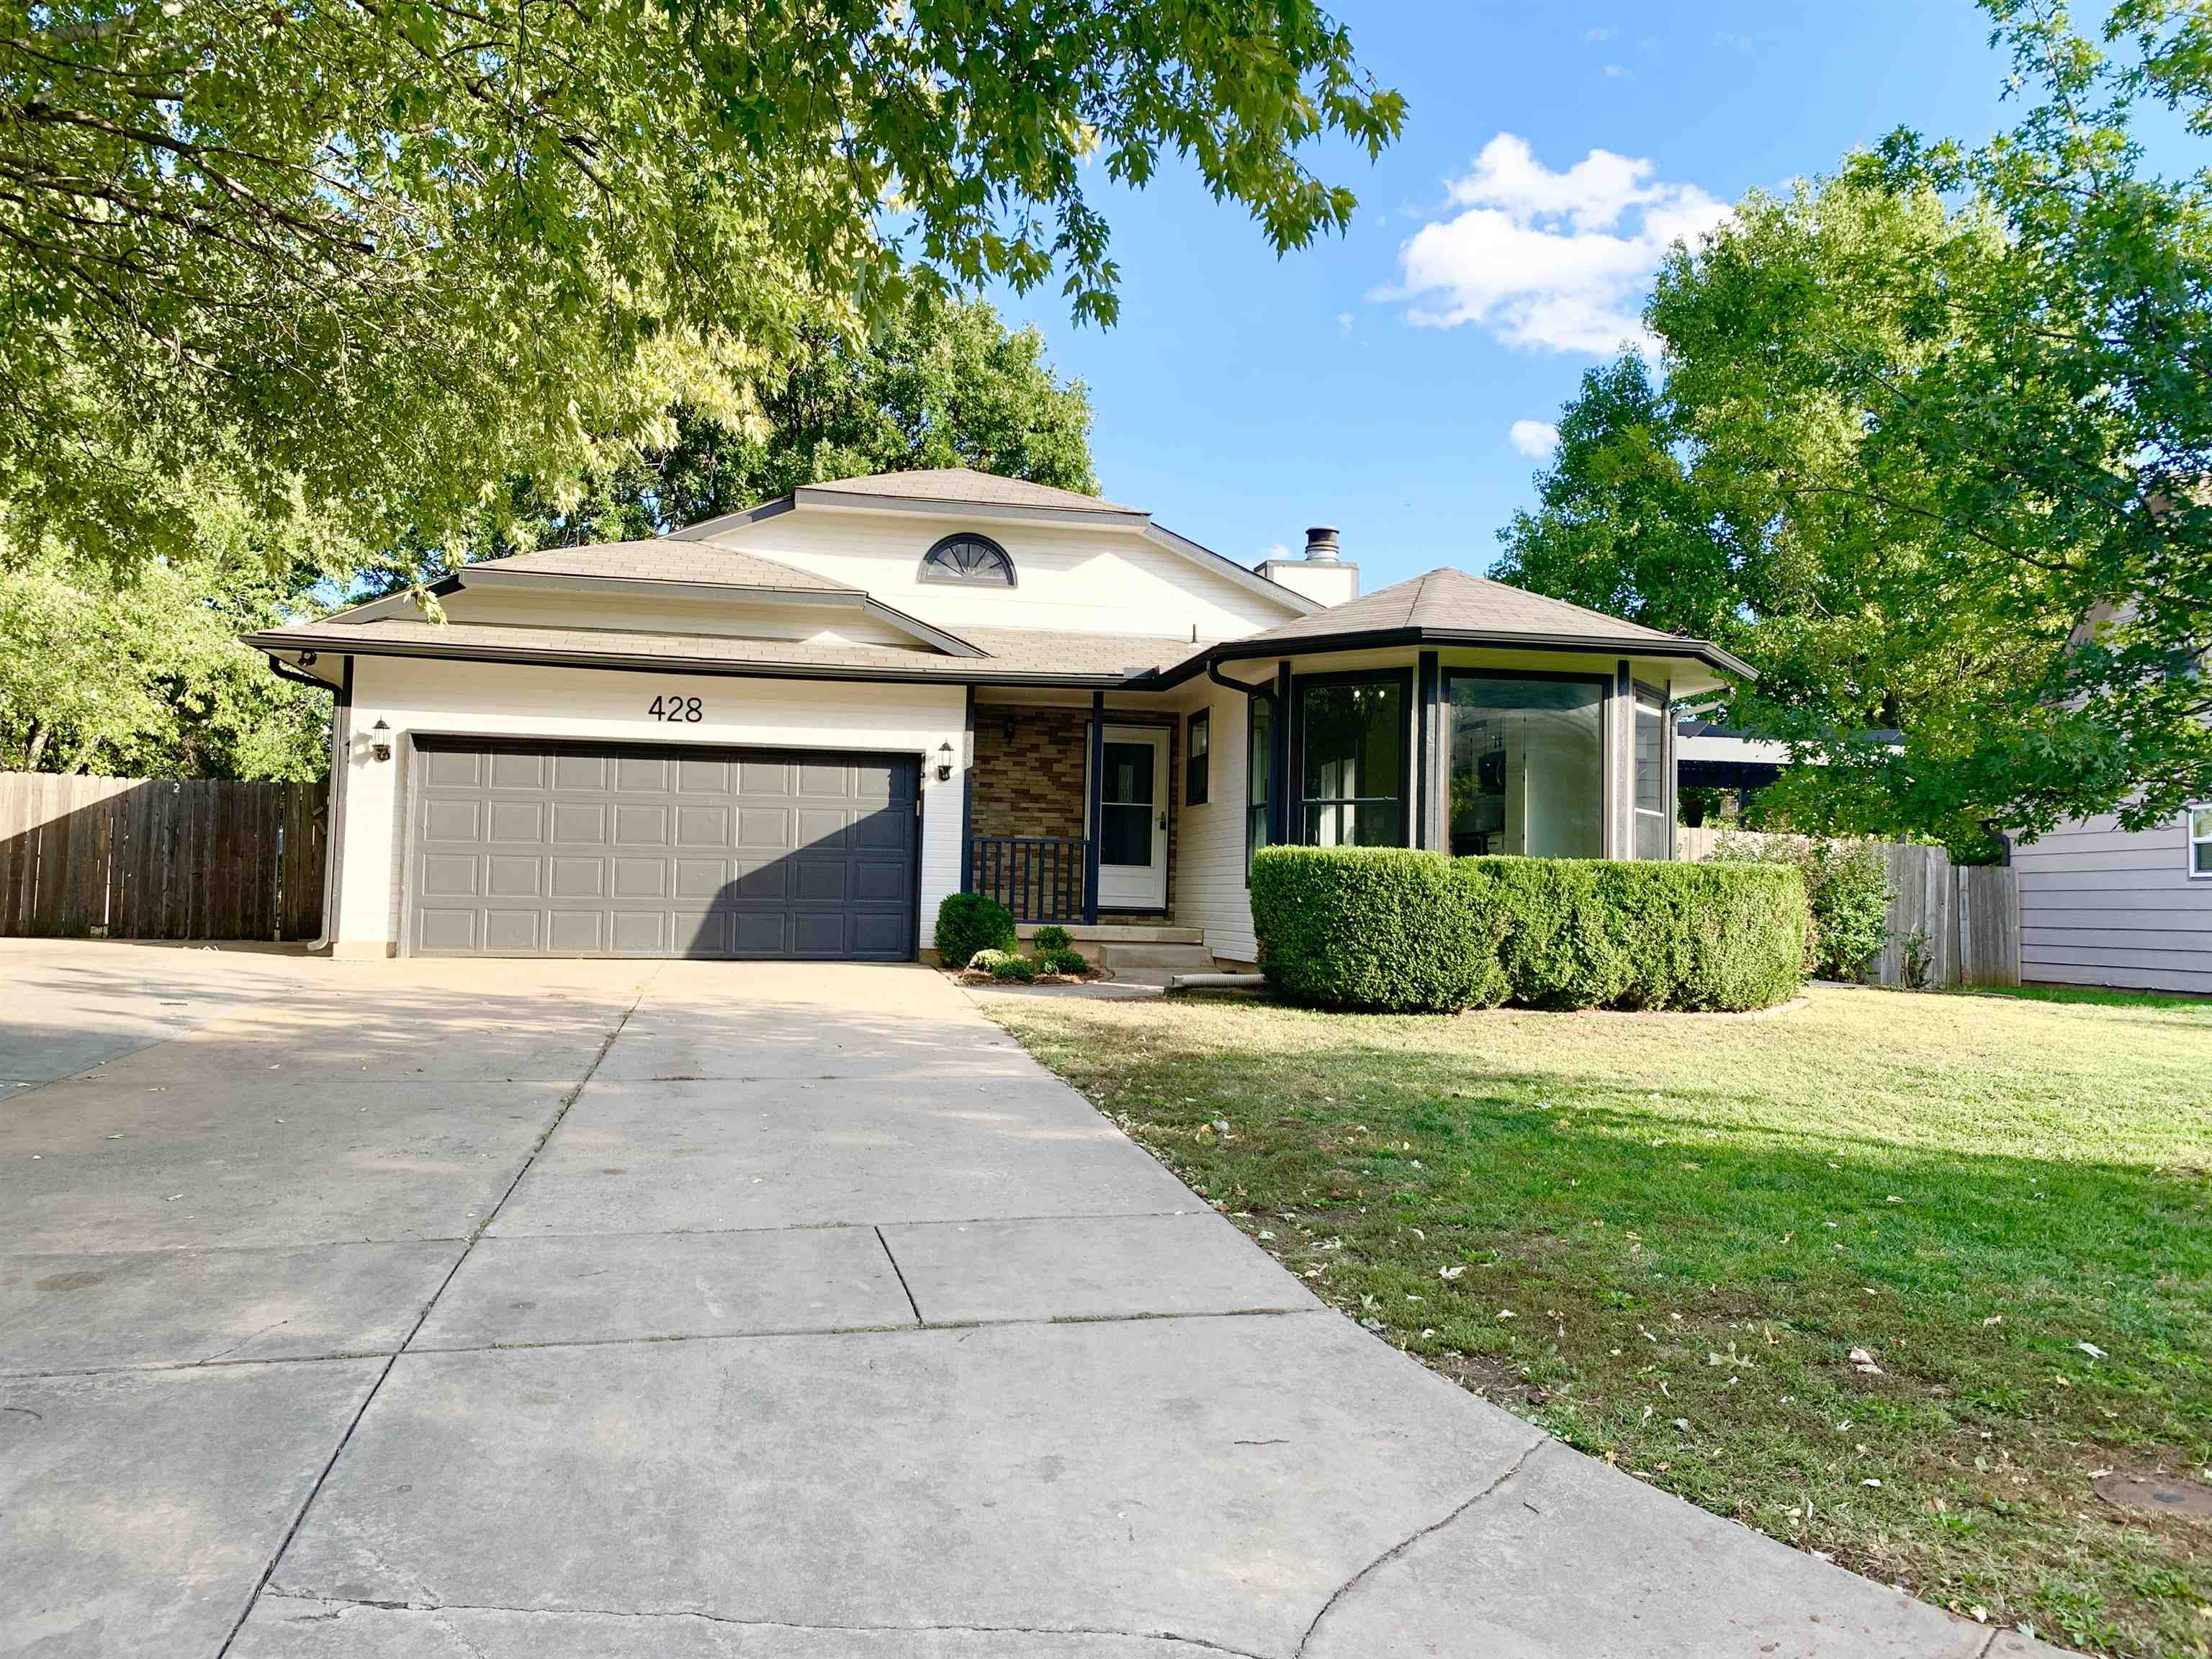 Beautifully remodeled west side charmer! As you walk in, you will see the great open layout displayi